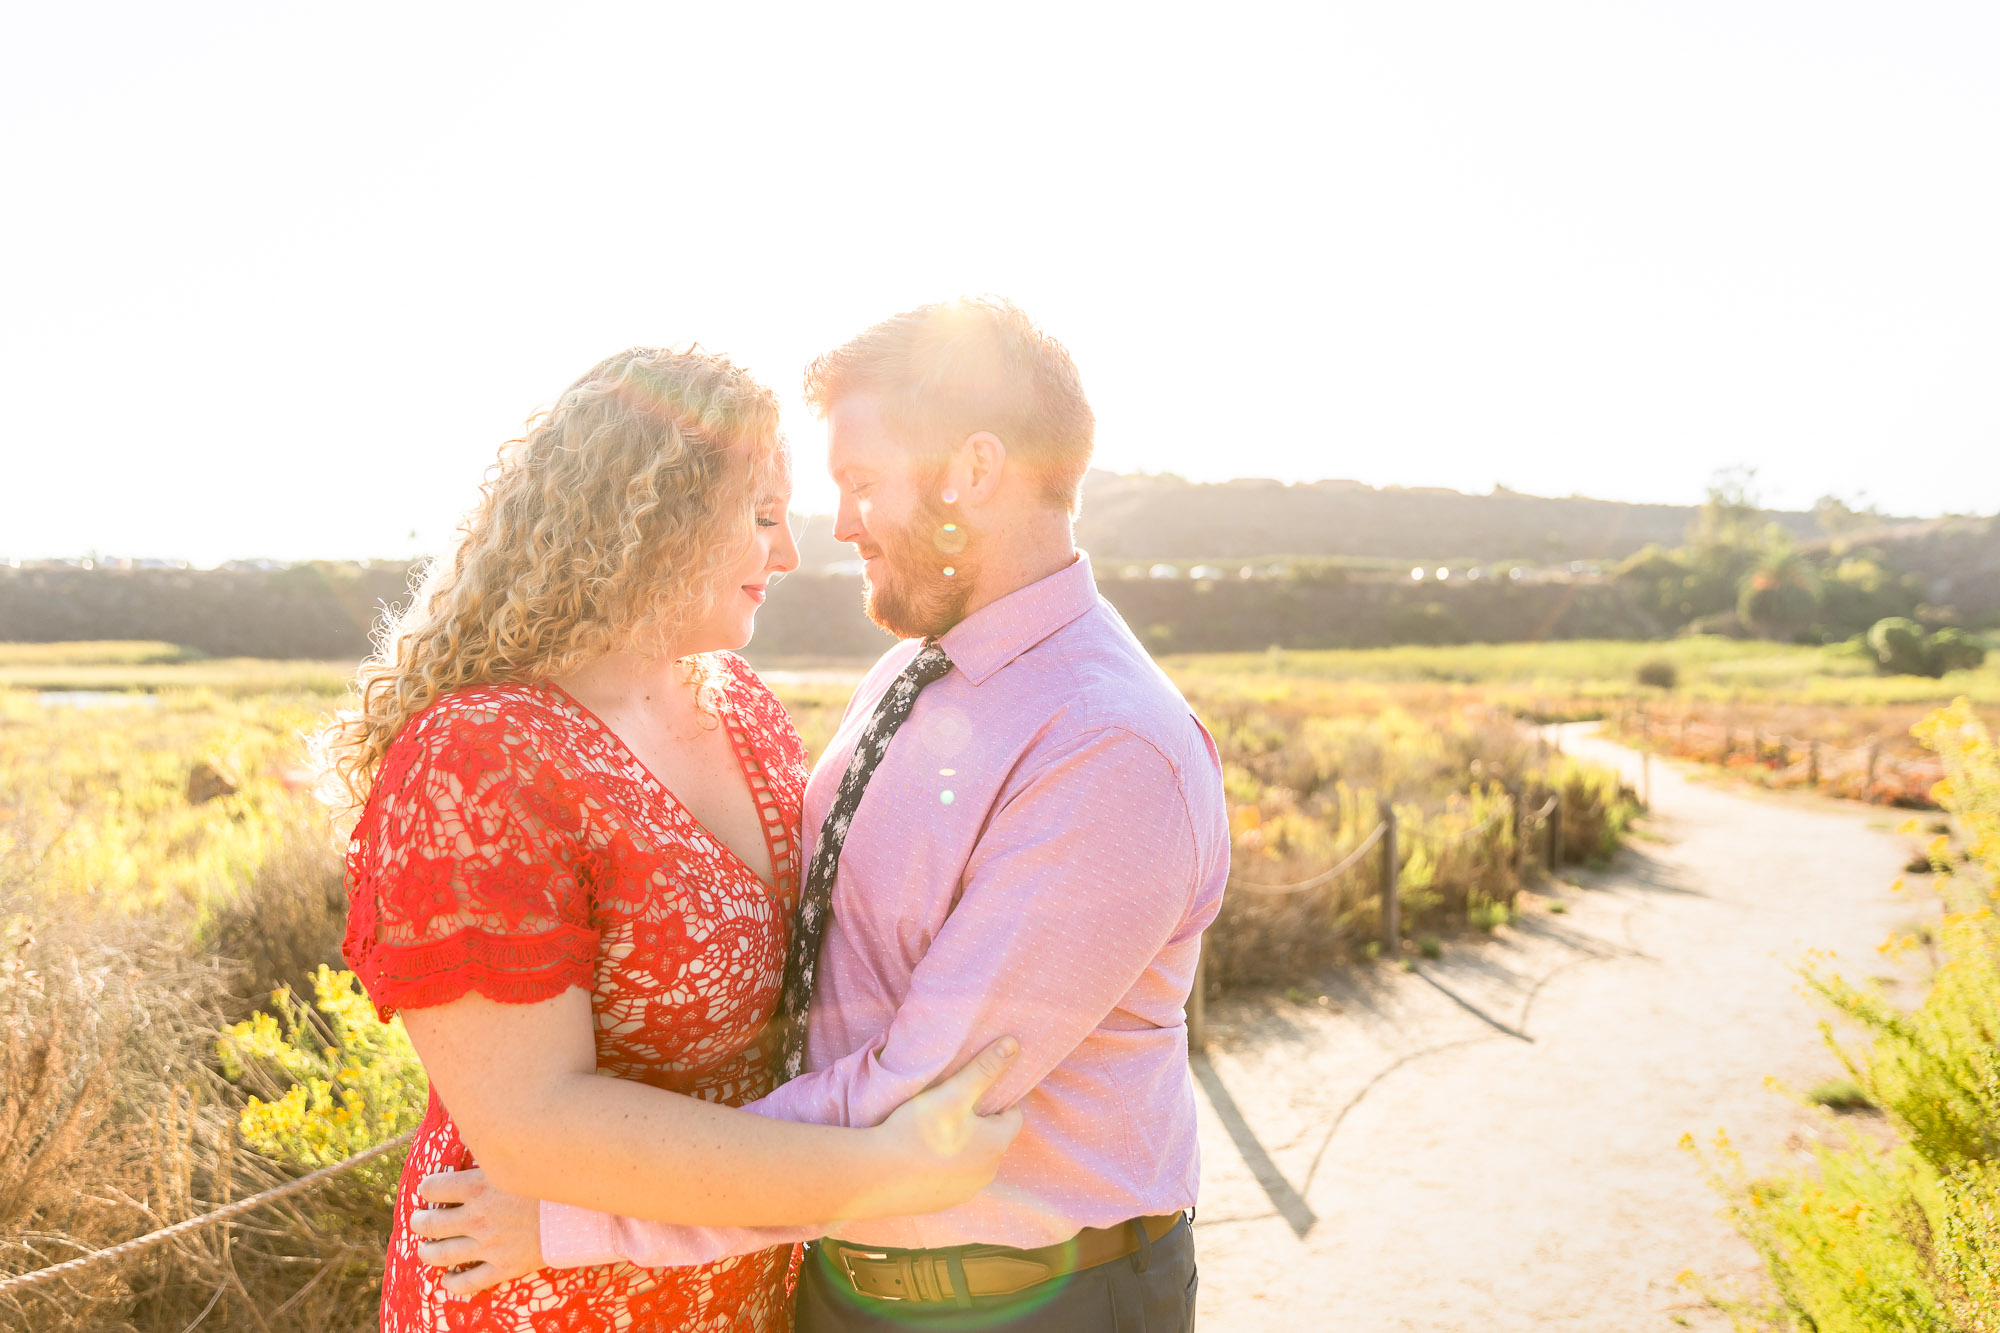 Tierney_Gregory_Batiquitos_Lagoon_Engagement_Session_018.jpg